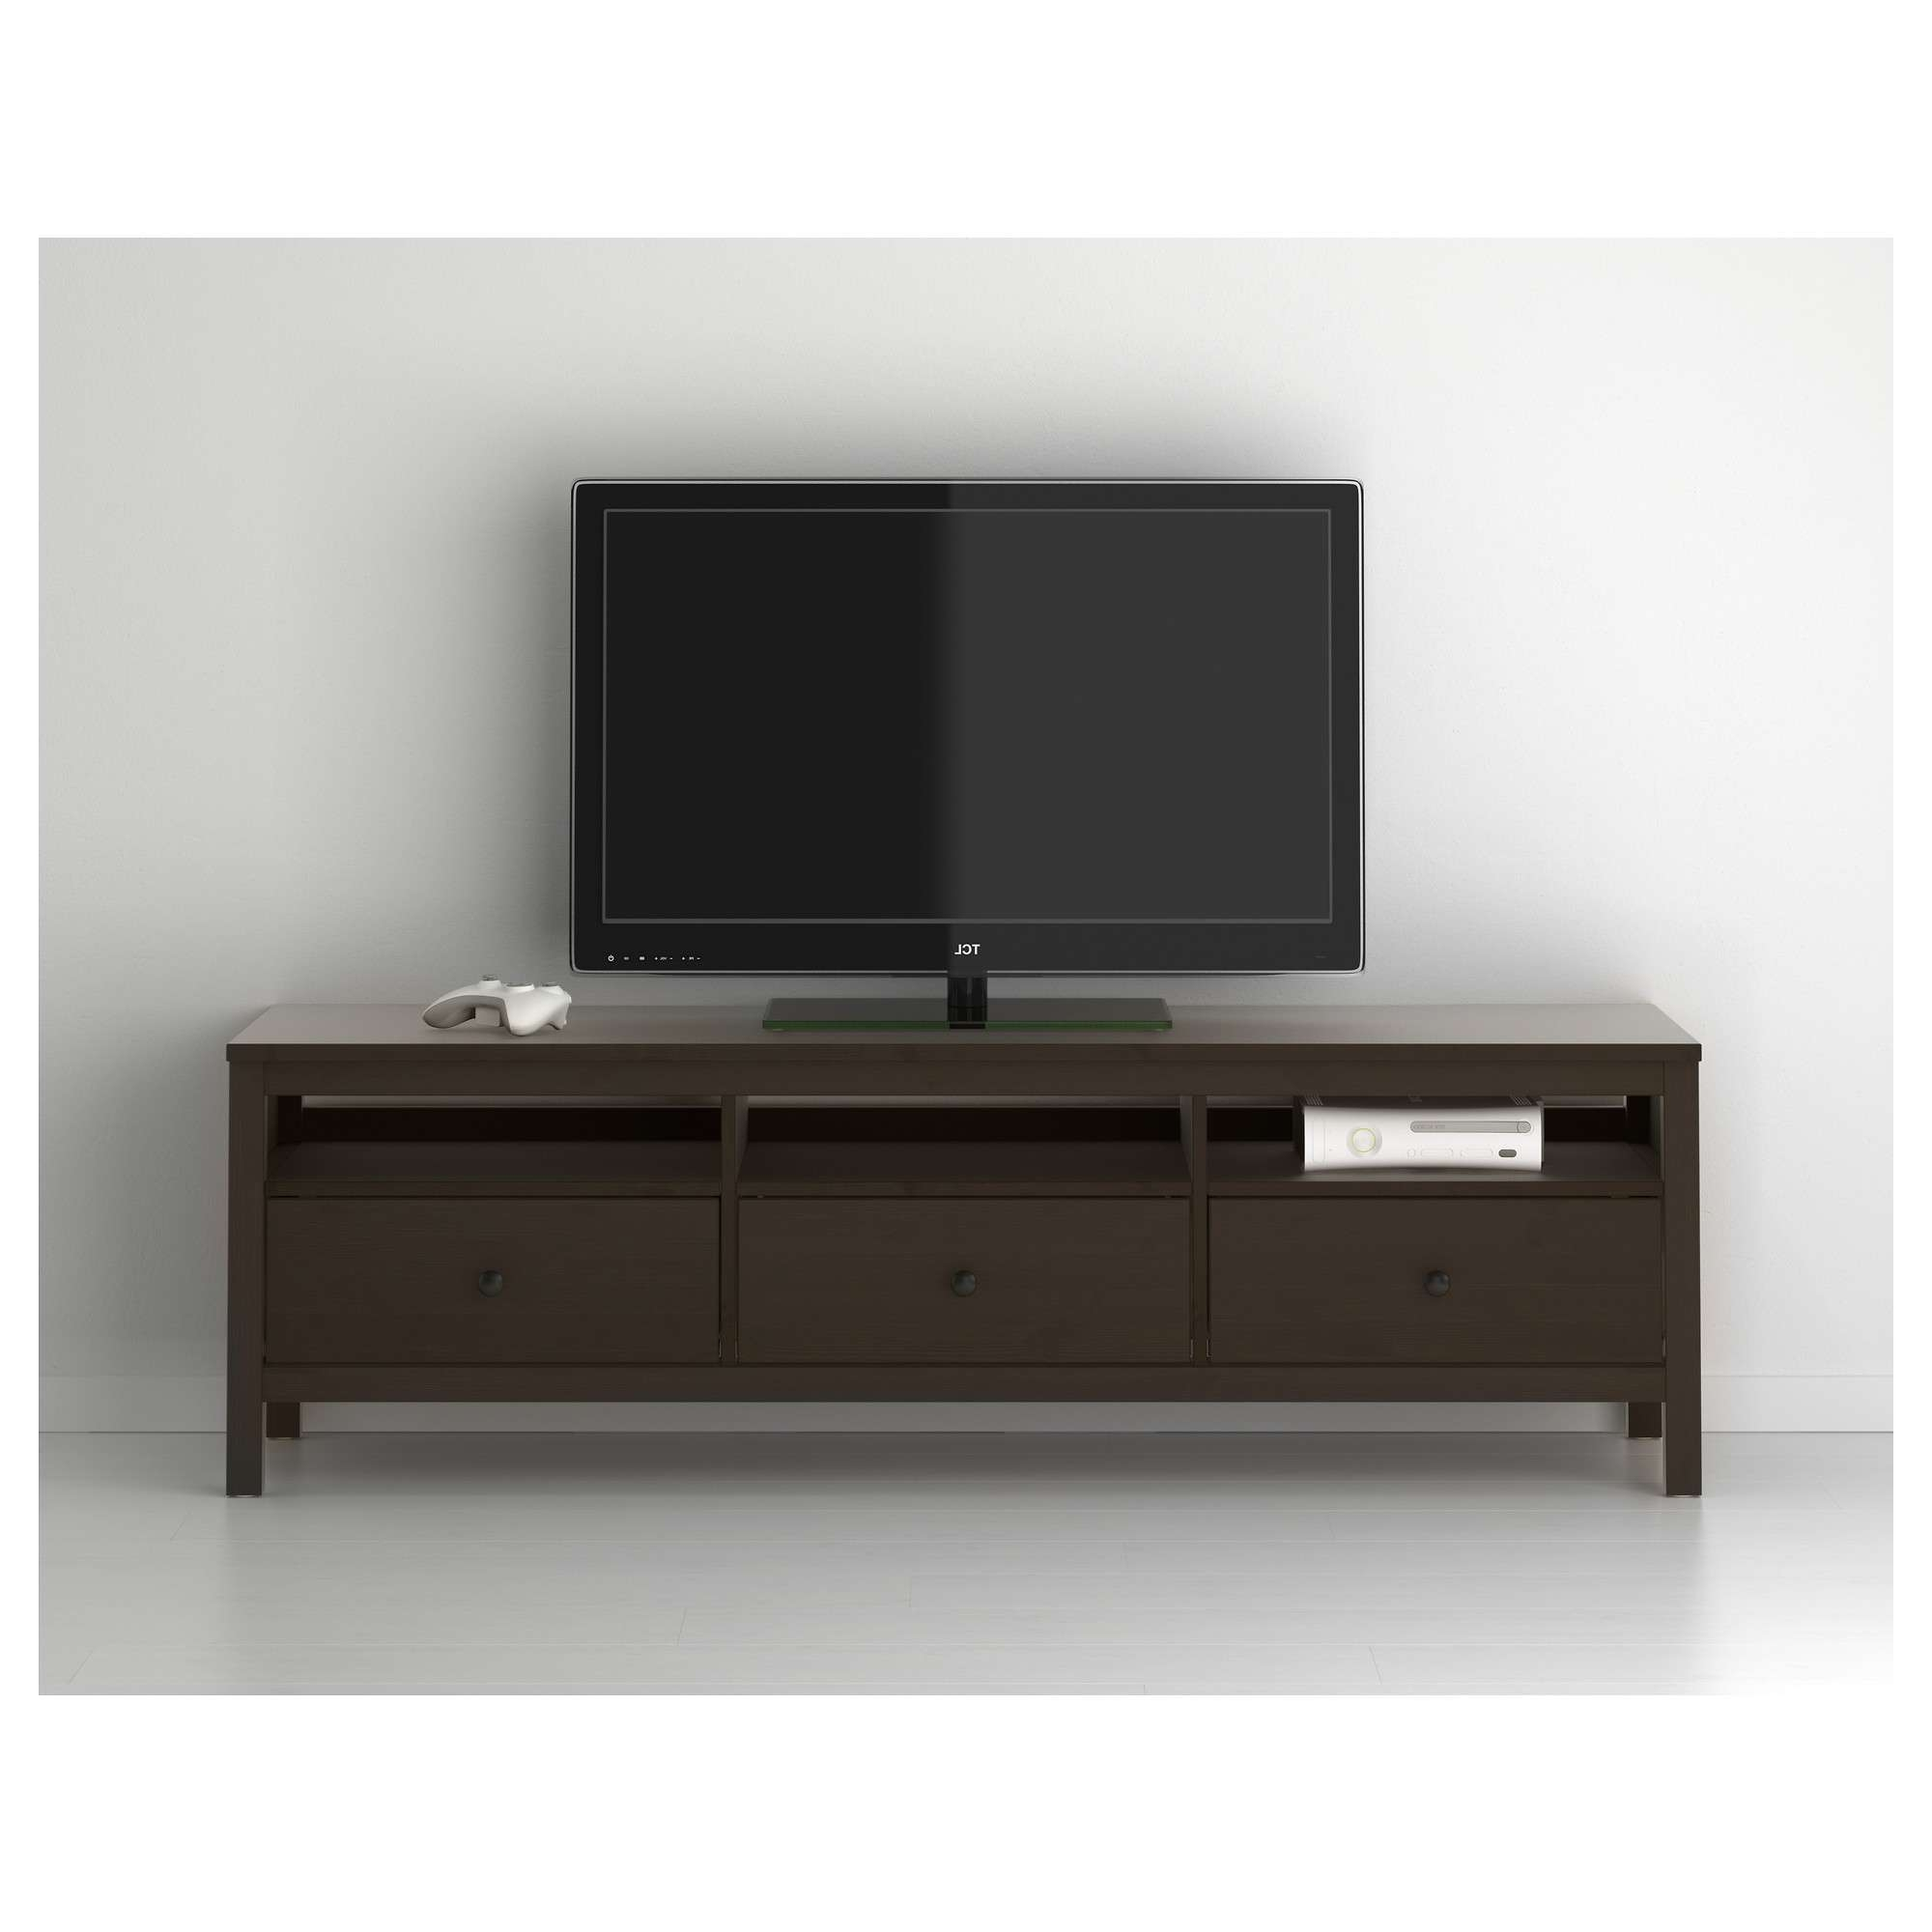 Wall Units: Tv Stands Ikea Tv Stands And Cabinets, Tv Cabinet With Inside Tv Stands At Ikea (View 10 of 15)